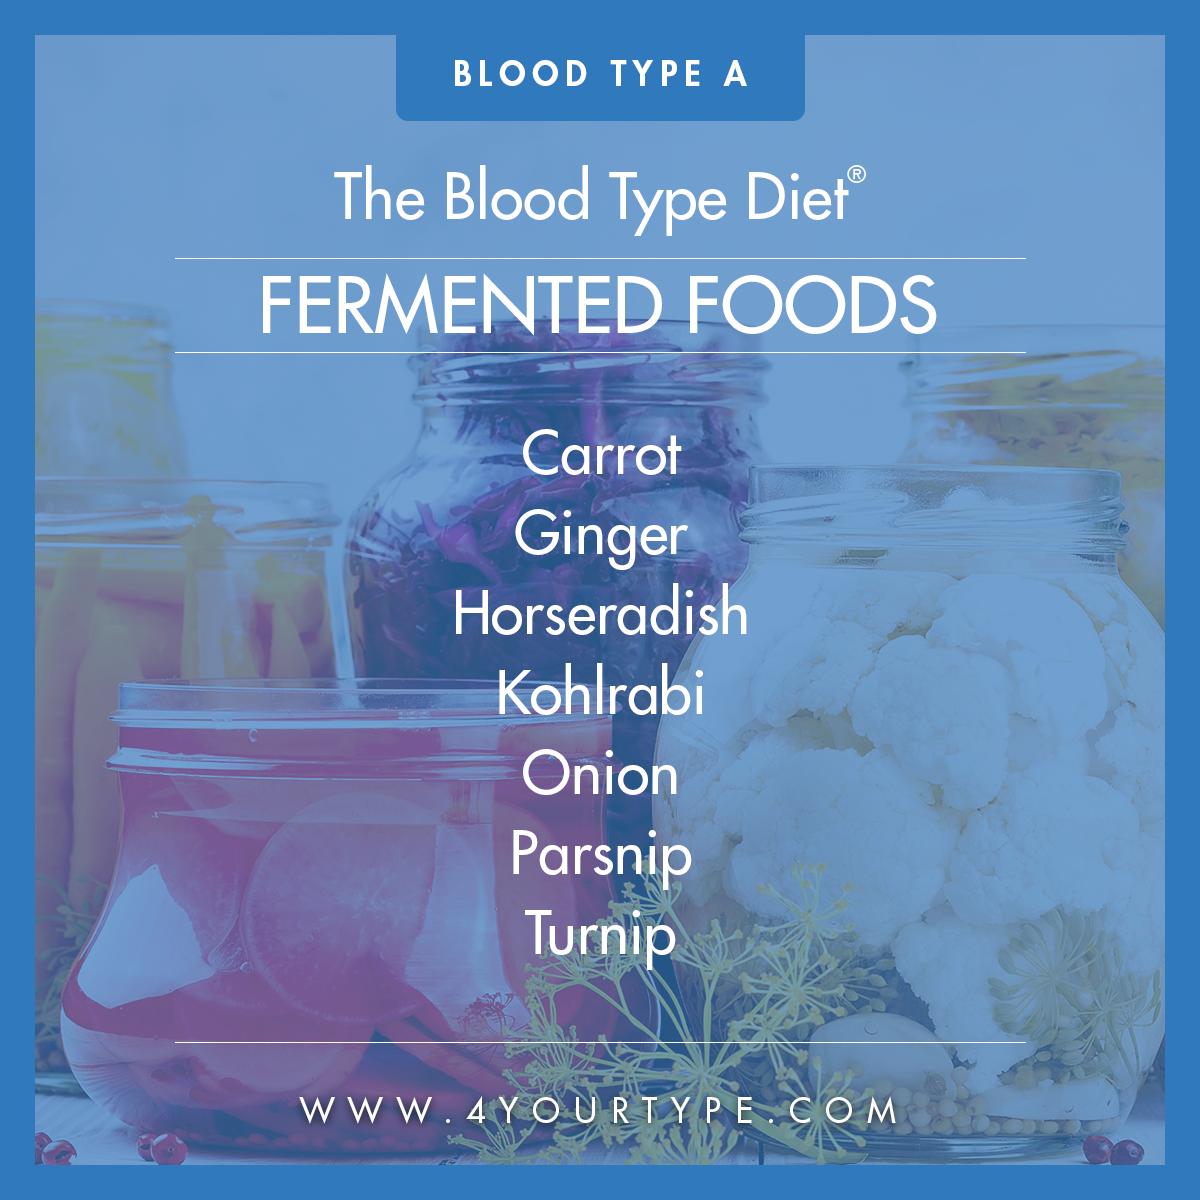 Blood Type A - Fermented Foods